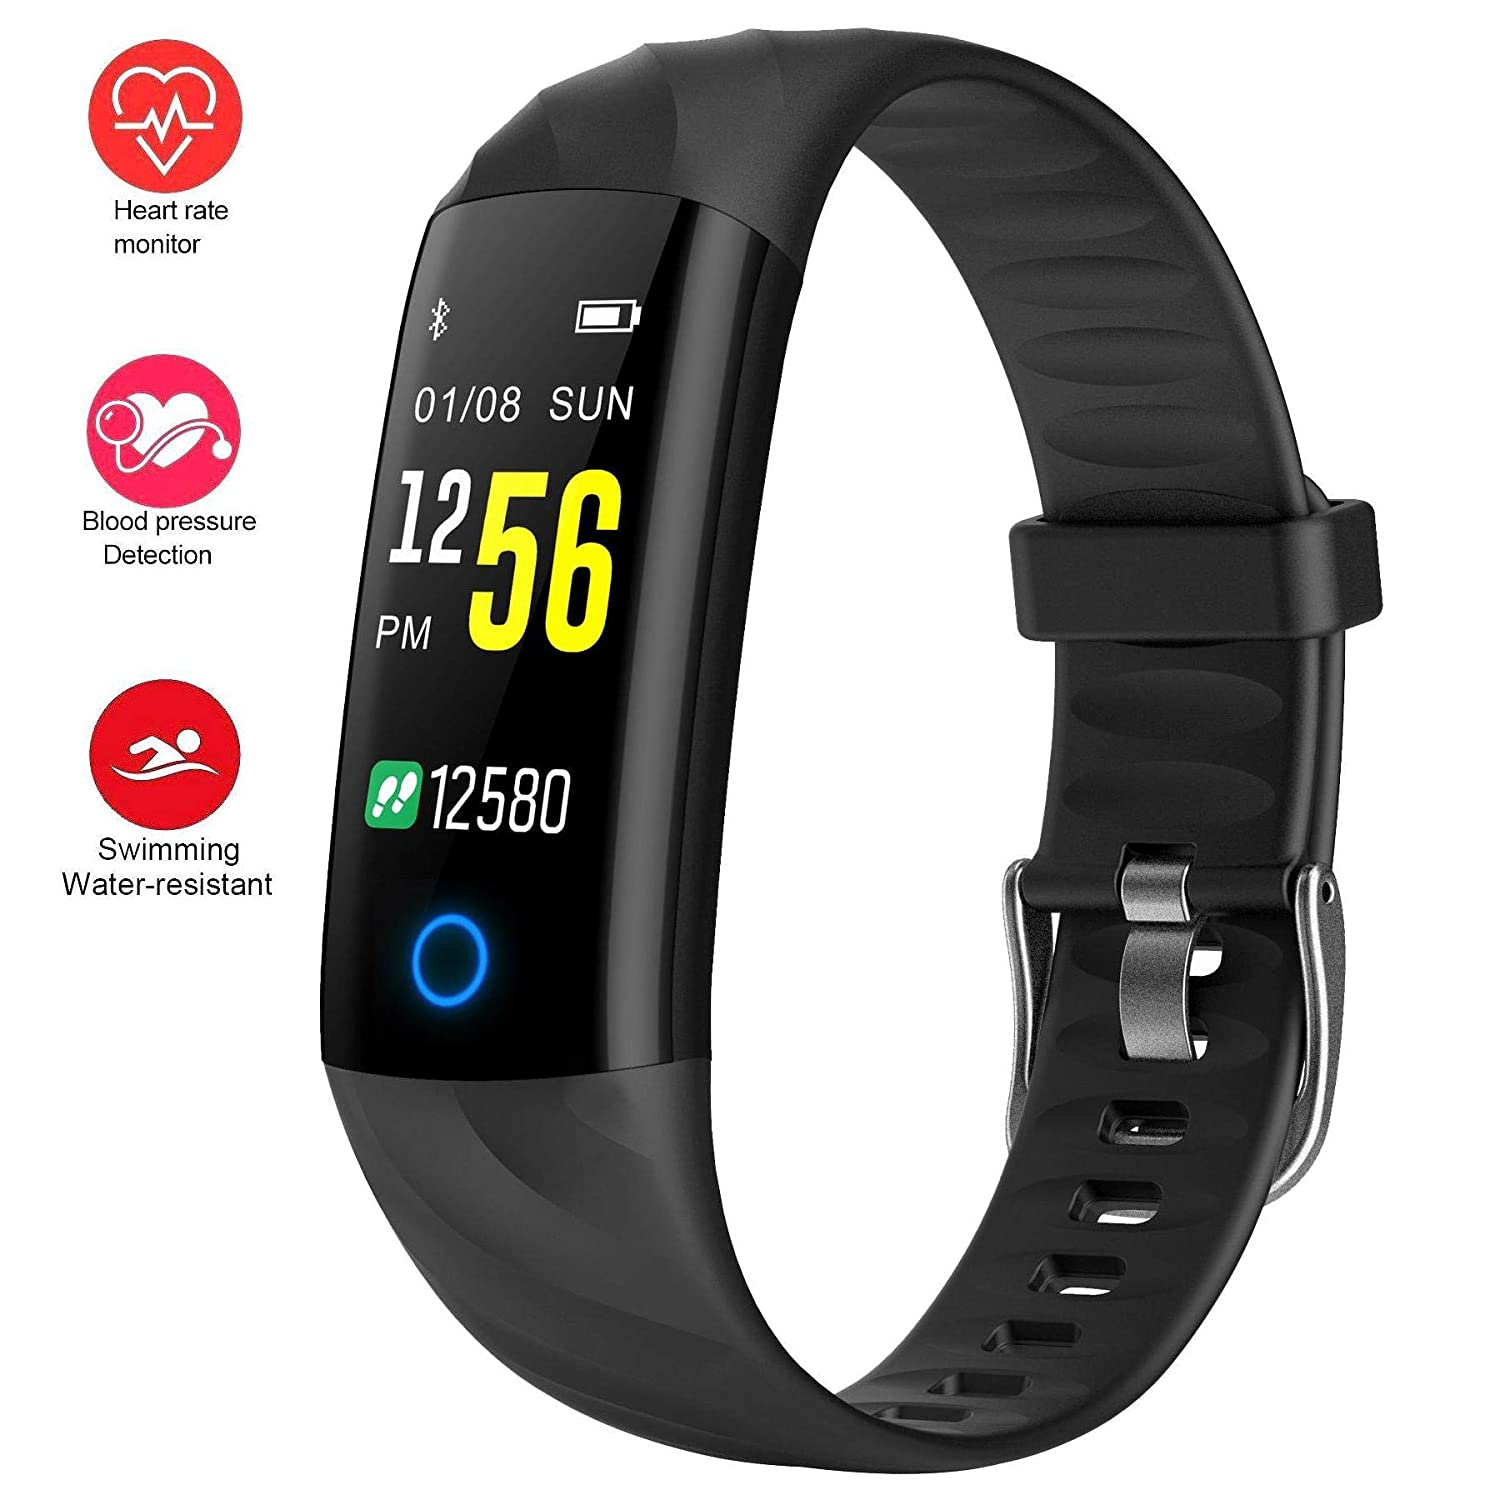 Fitness Trackers,Heart Rate Monitor Smartwatch with Aerobic Exercise Indicator,120 Feet Waterproof Pedometer Calorie Counter Smart Sport ...